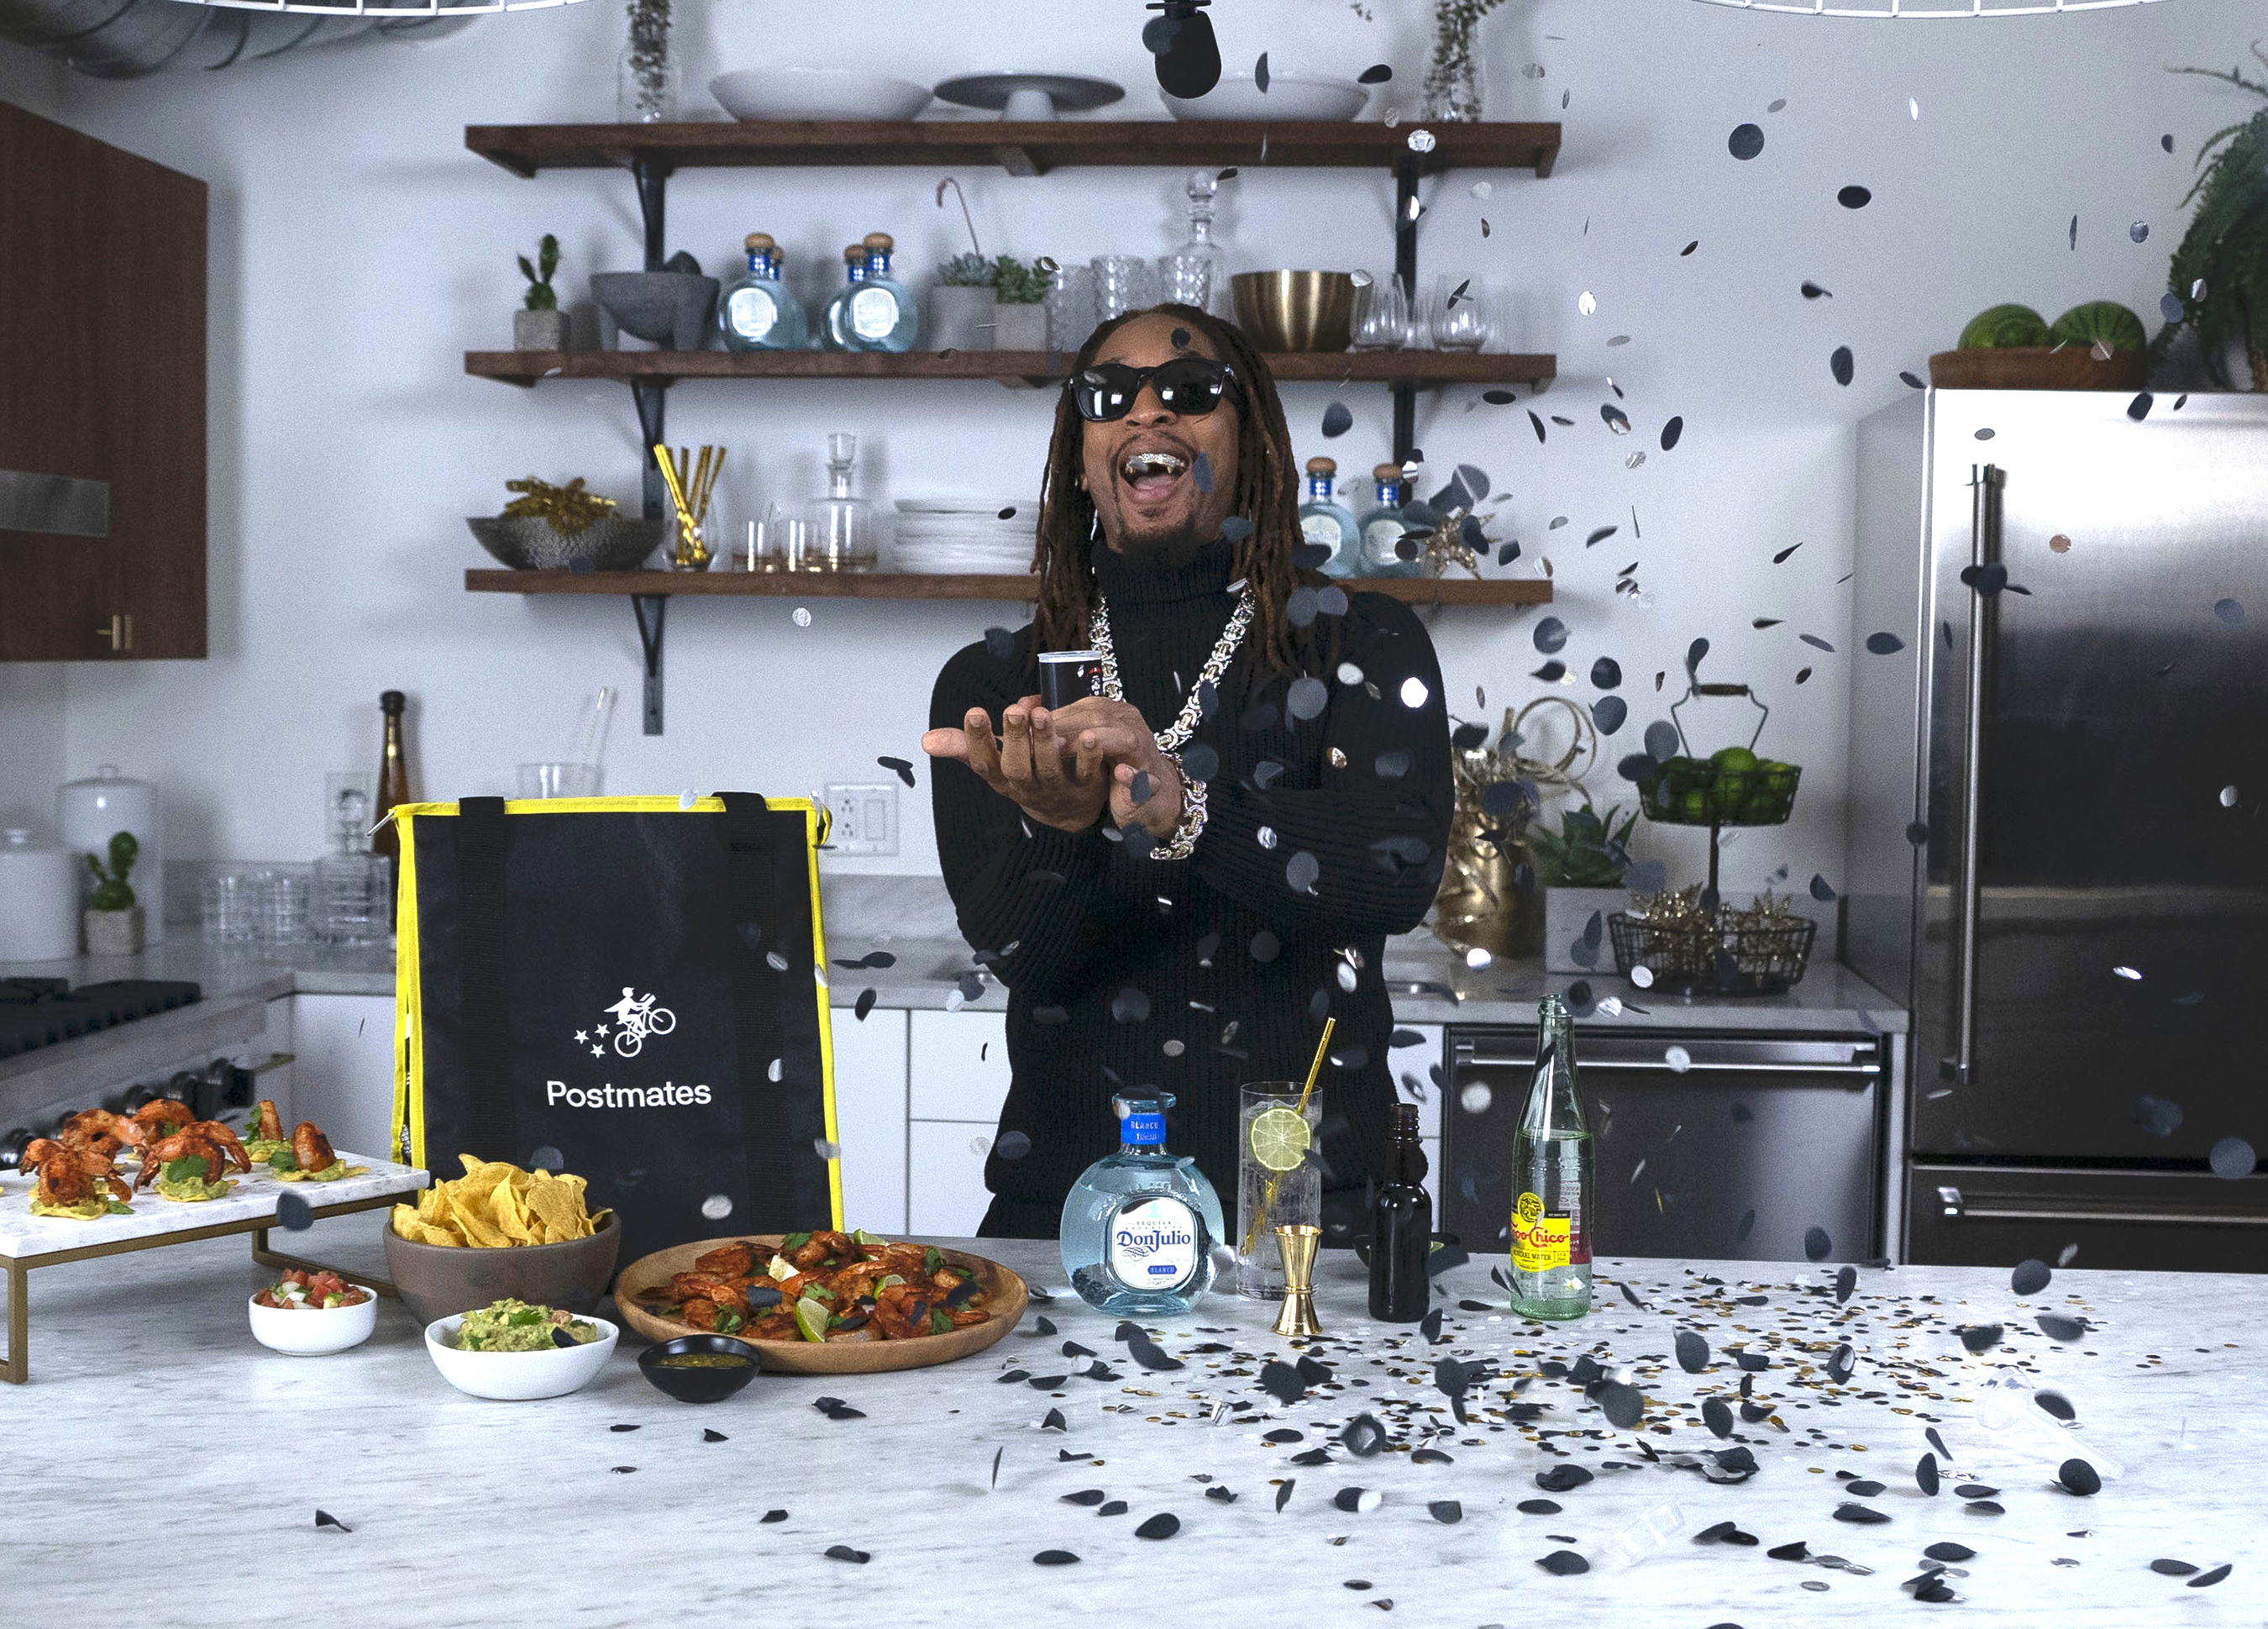 Lil Jon Celebrating with the New Year's Eve Don Julio Party Pack from Postmates